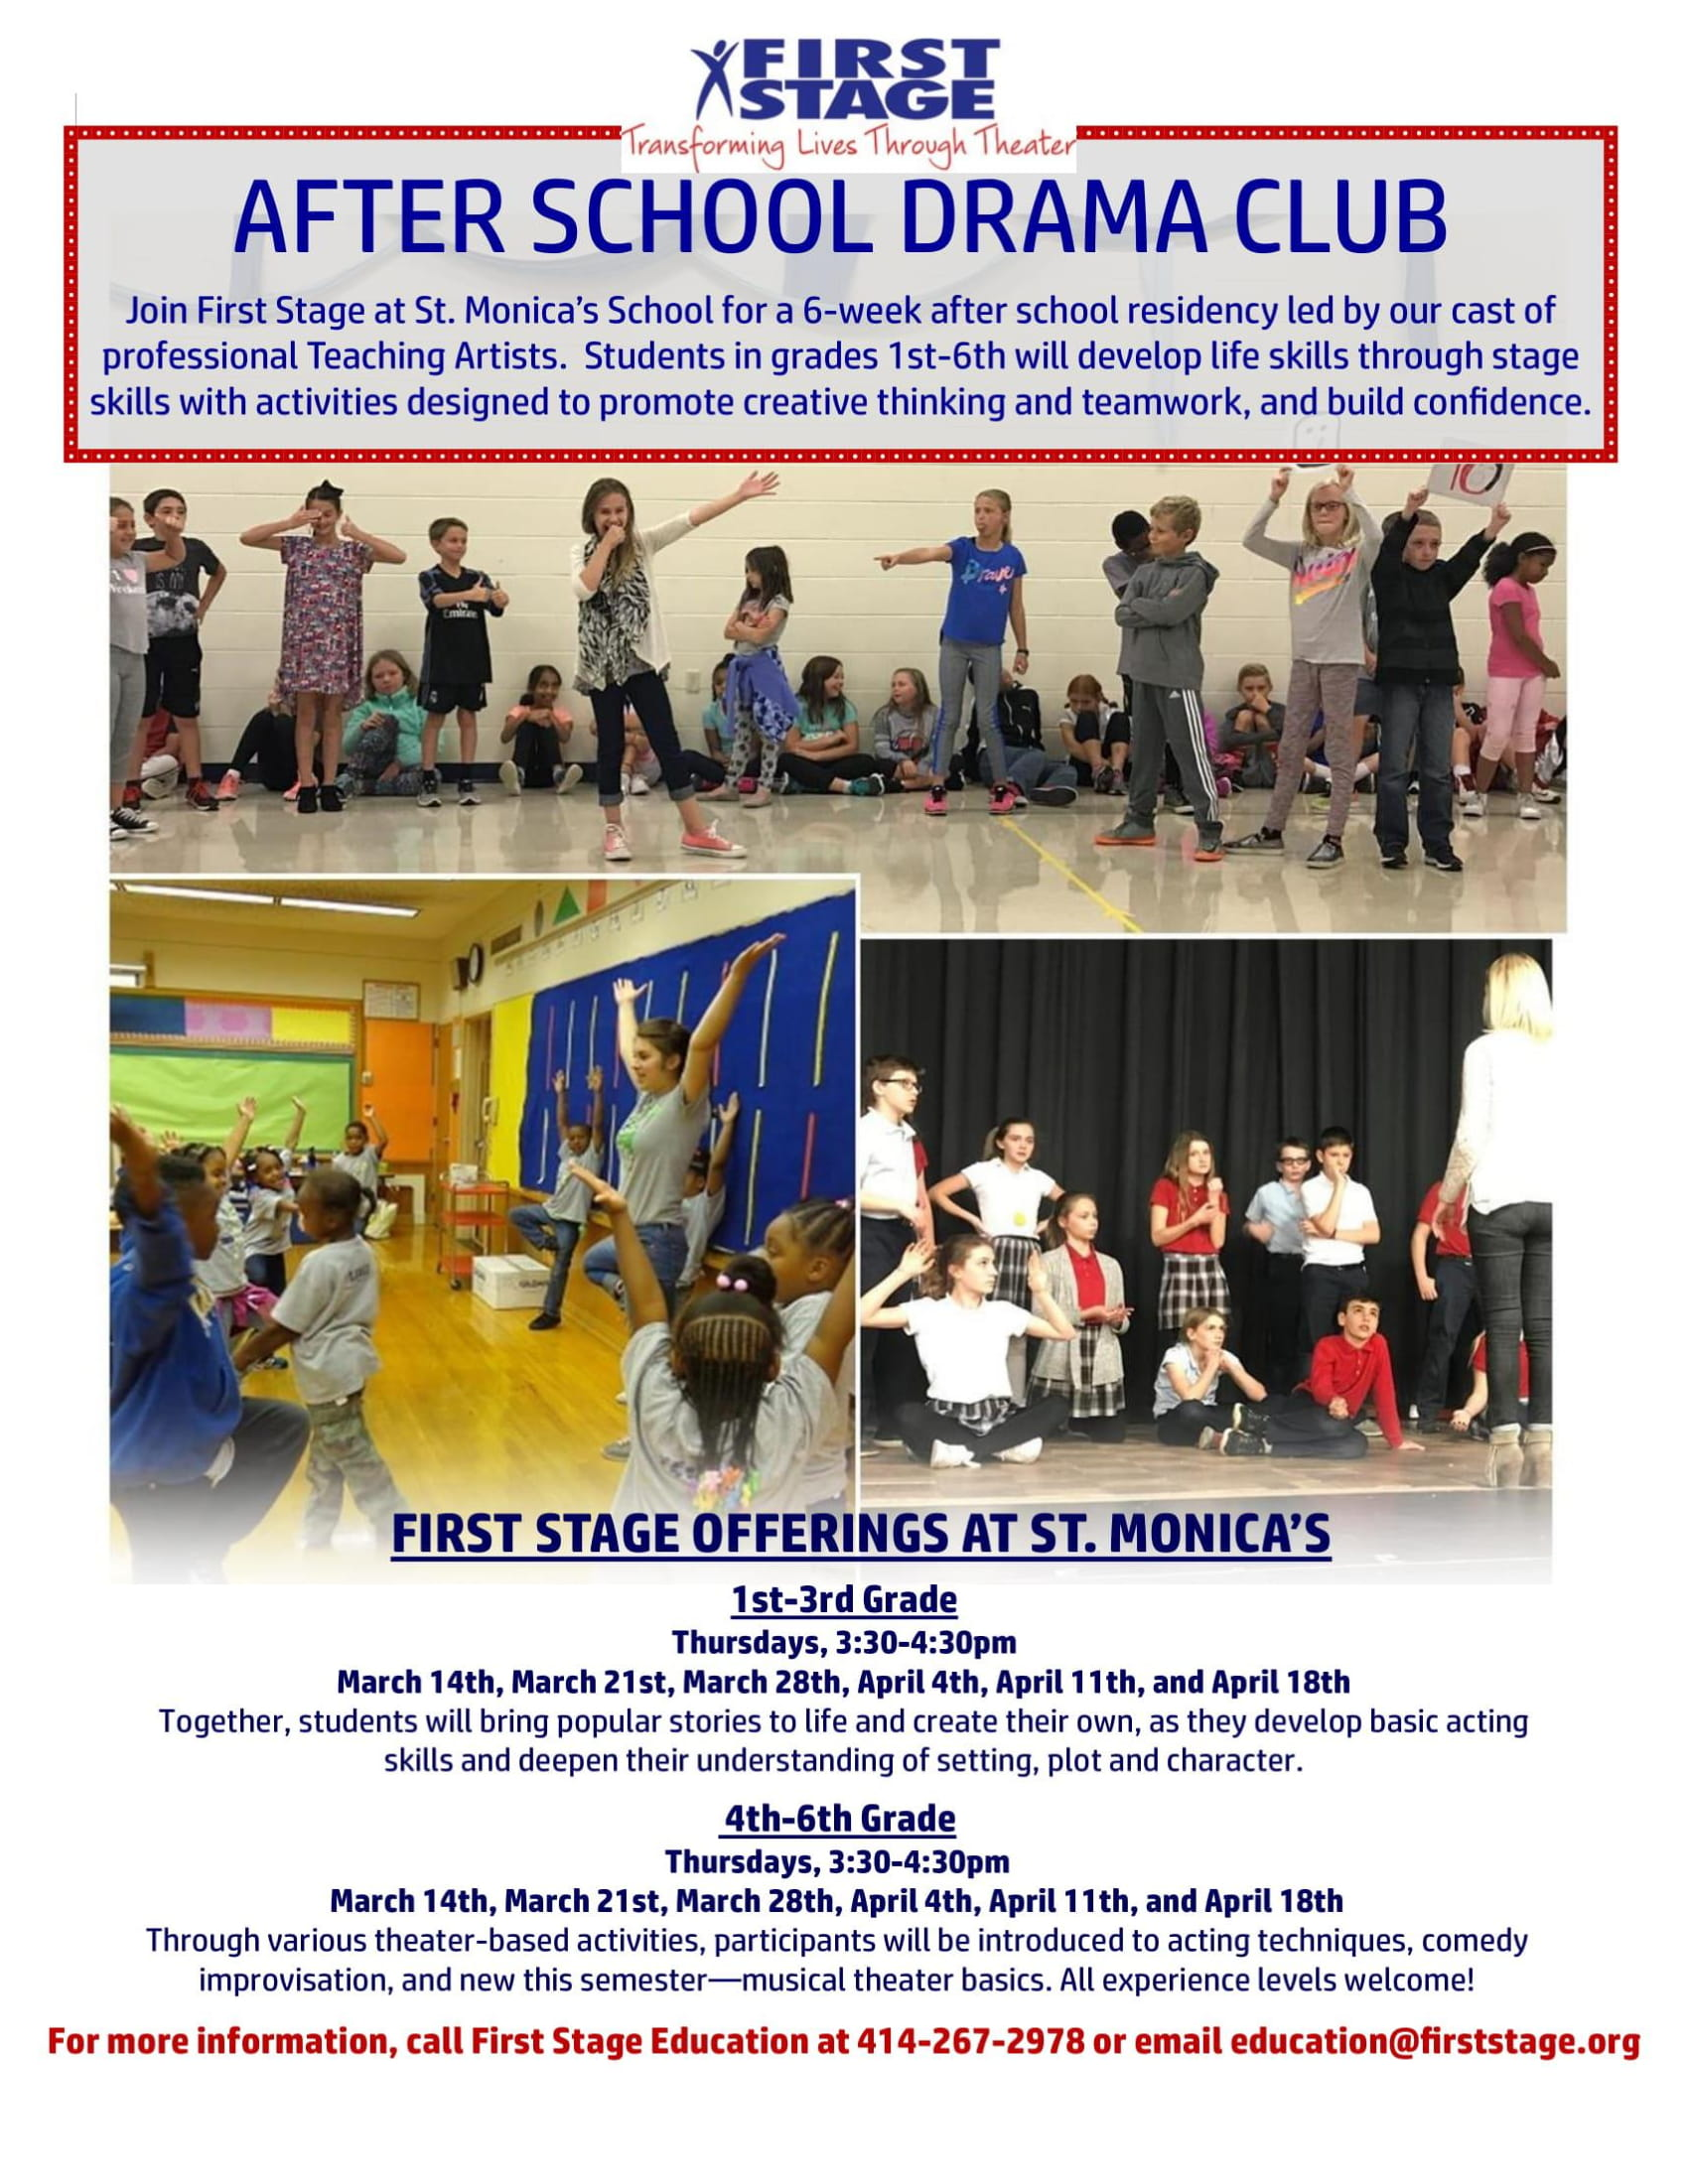 More information email  education@firststage.org